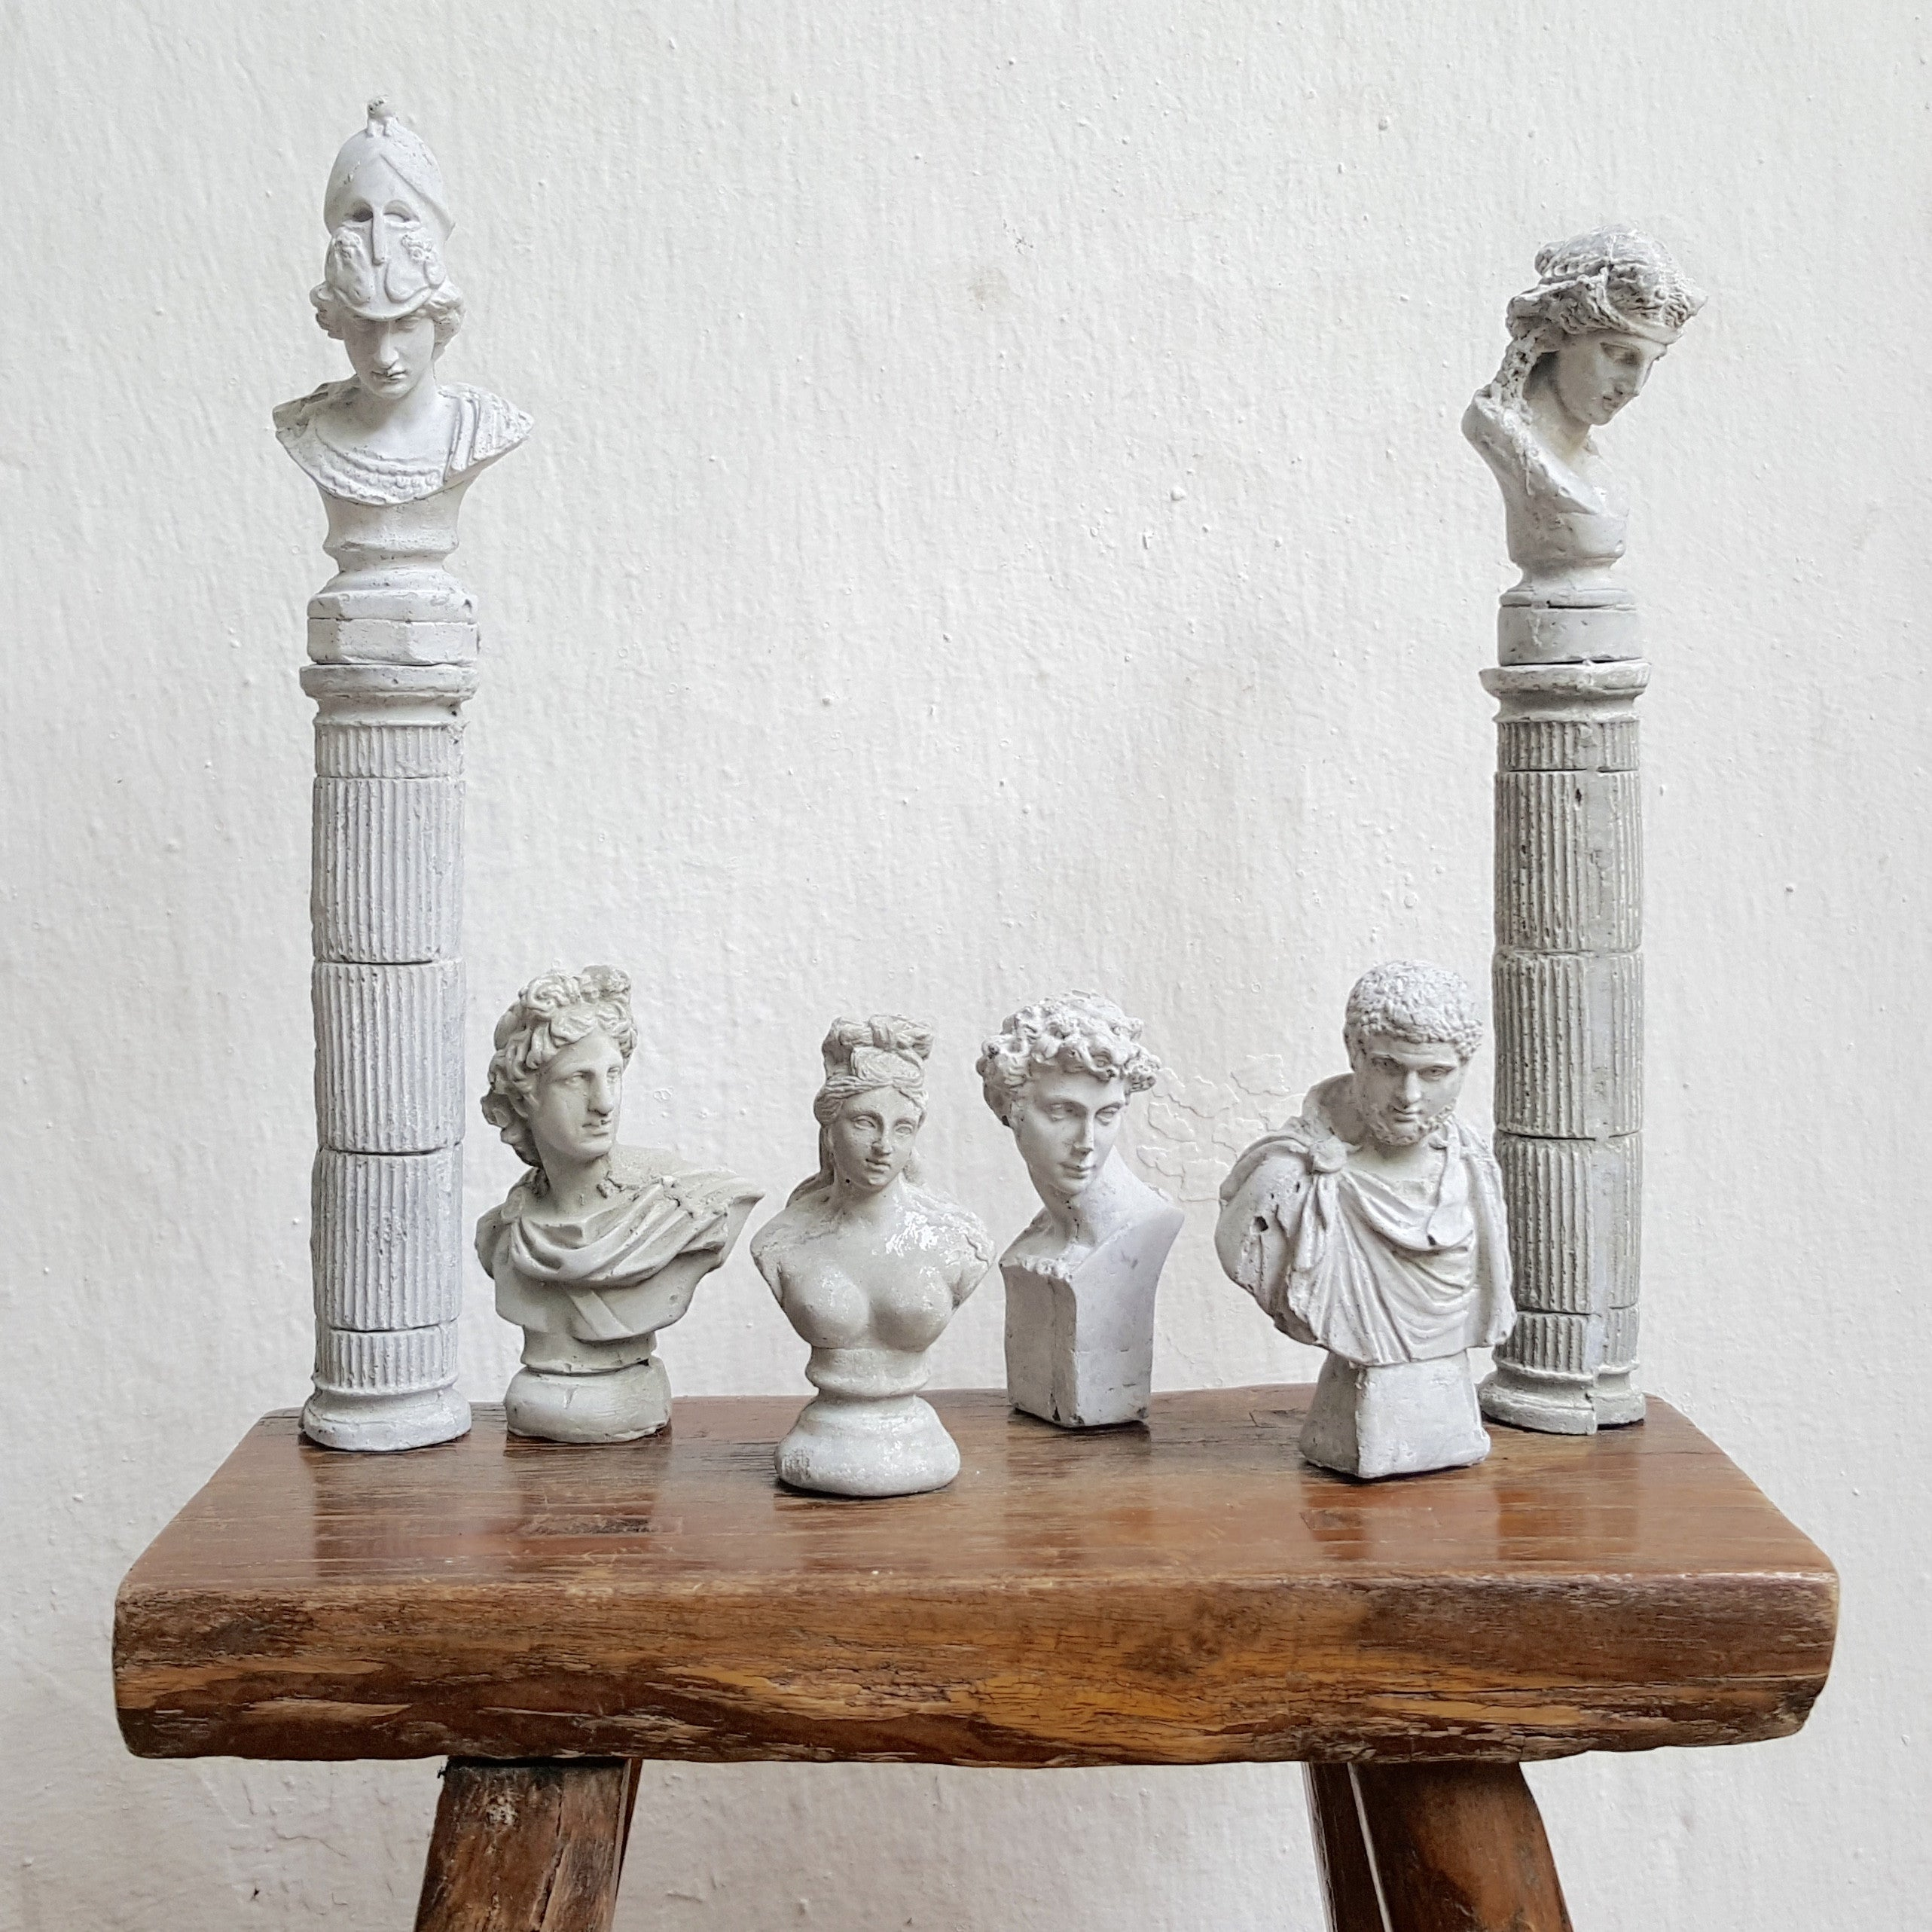 CONCRETE FIGURINES